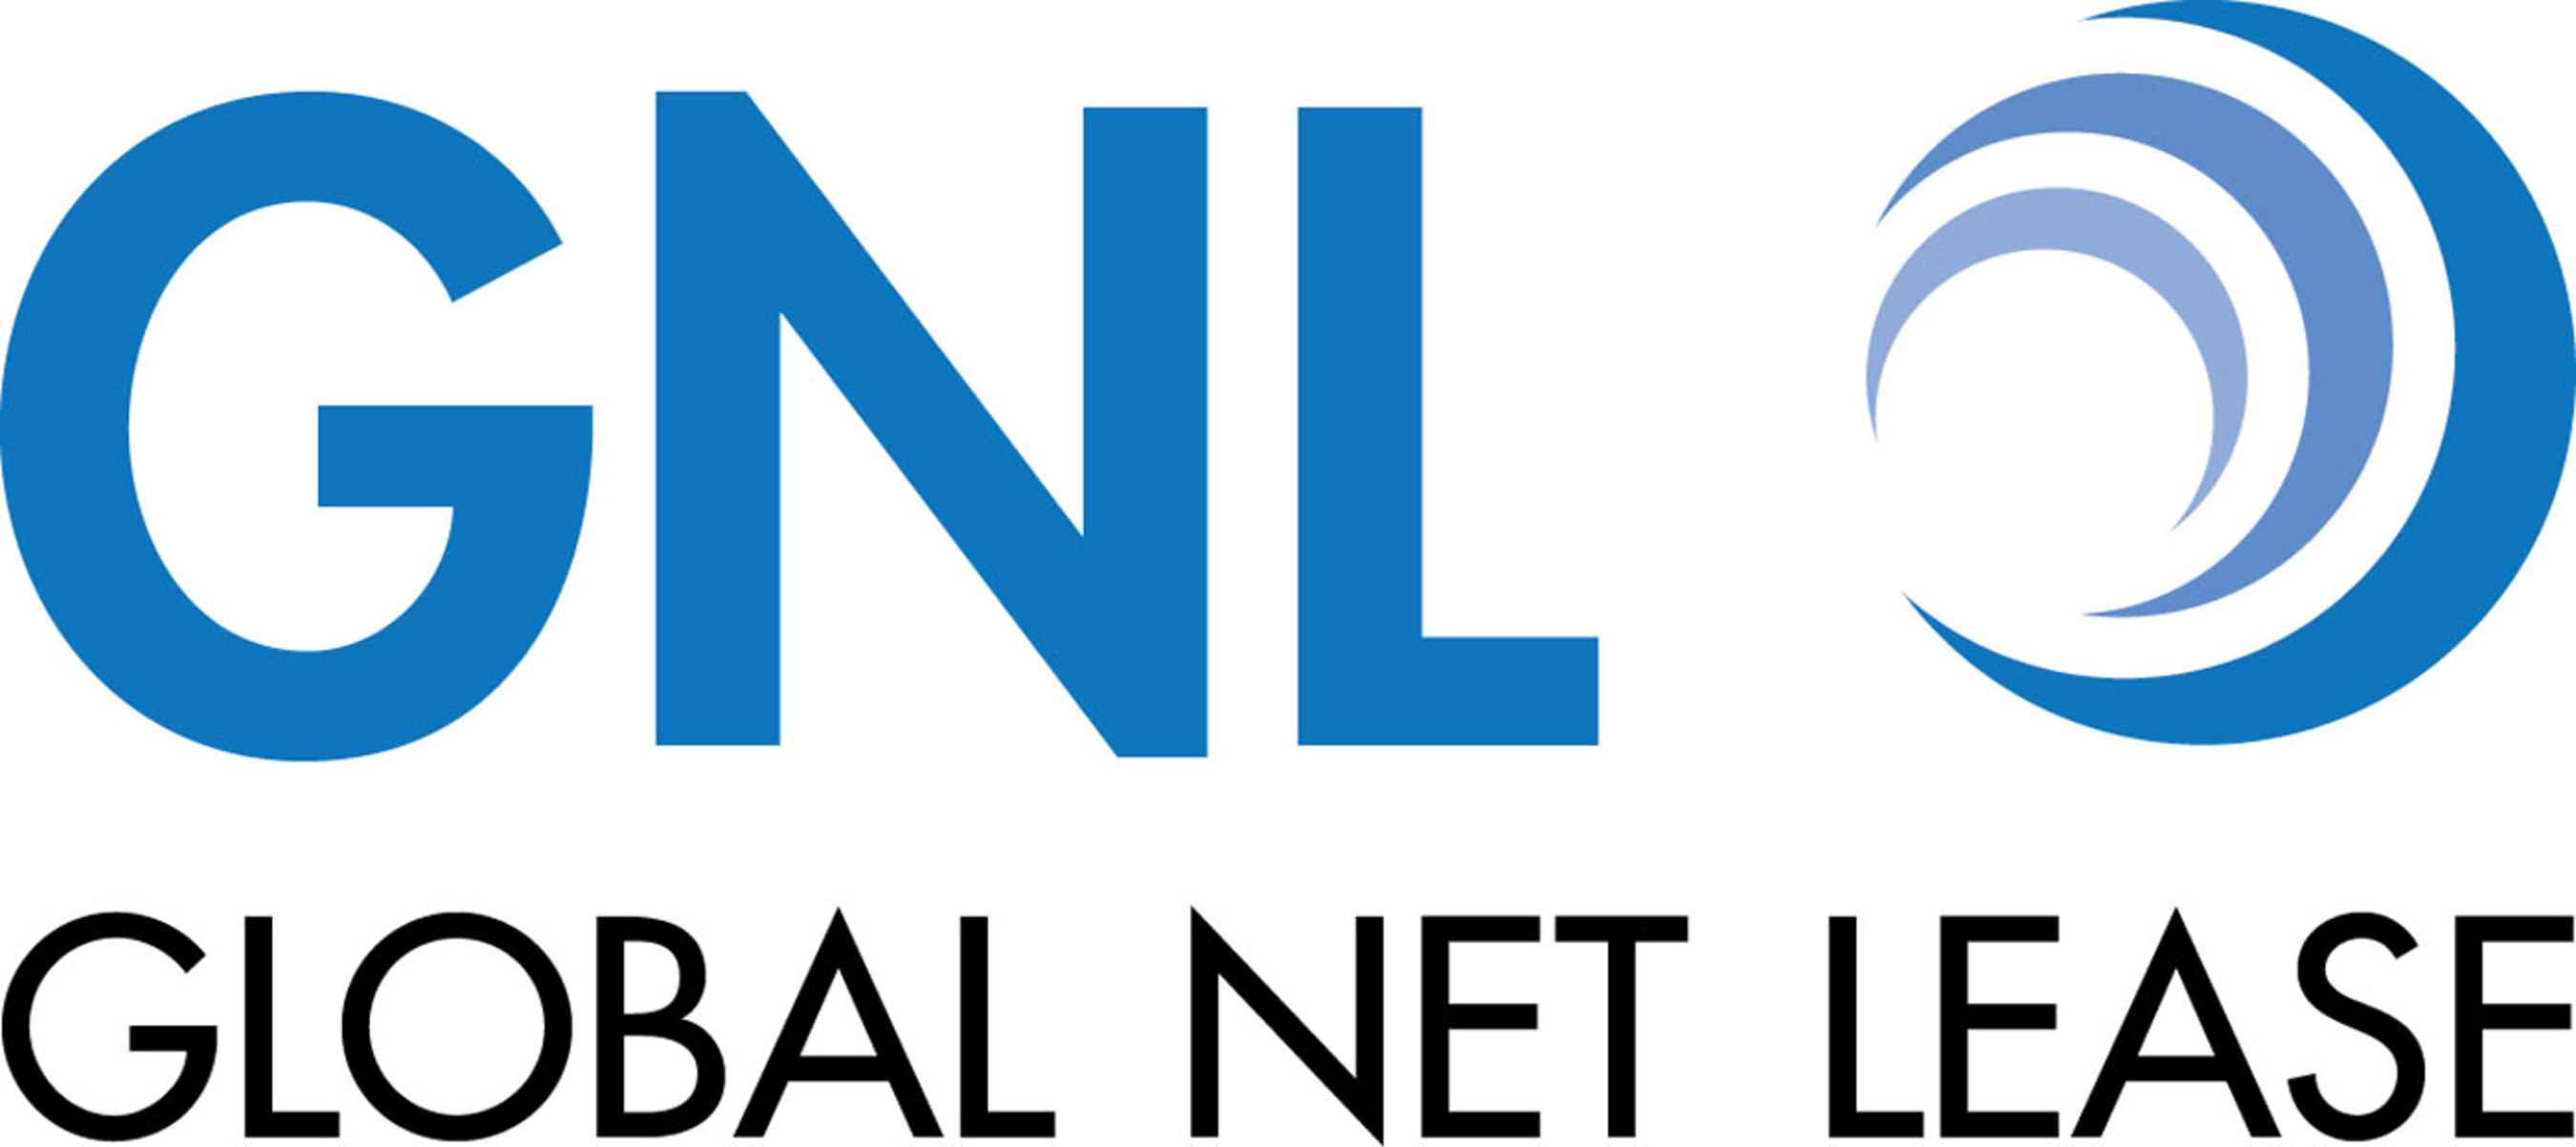 Global Net Lease Announces Operating Results for the Second Quarter 2015